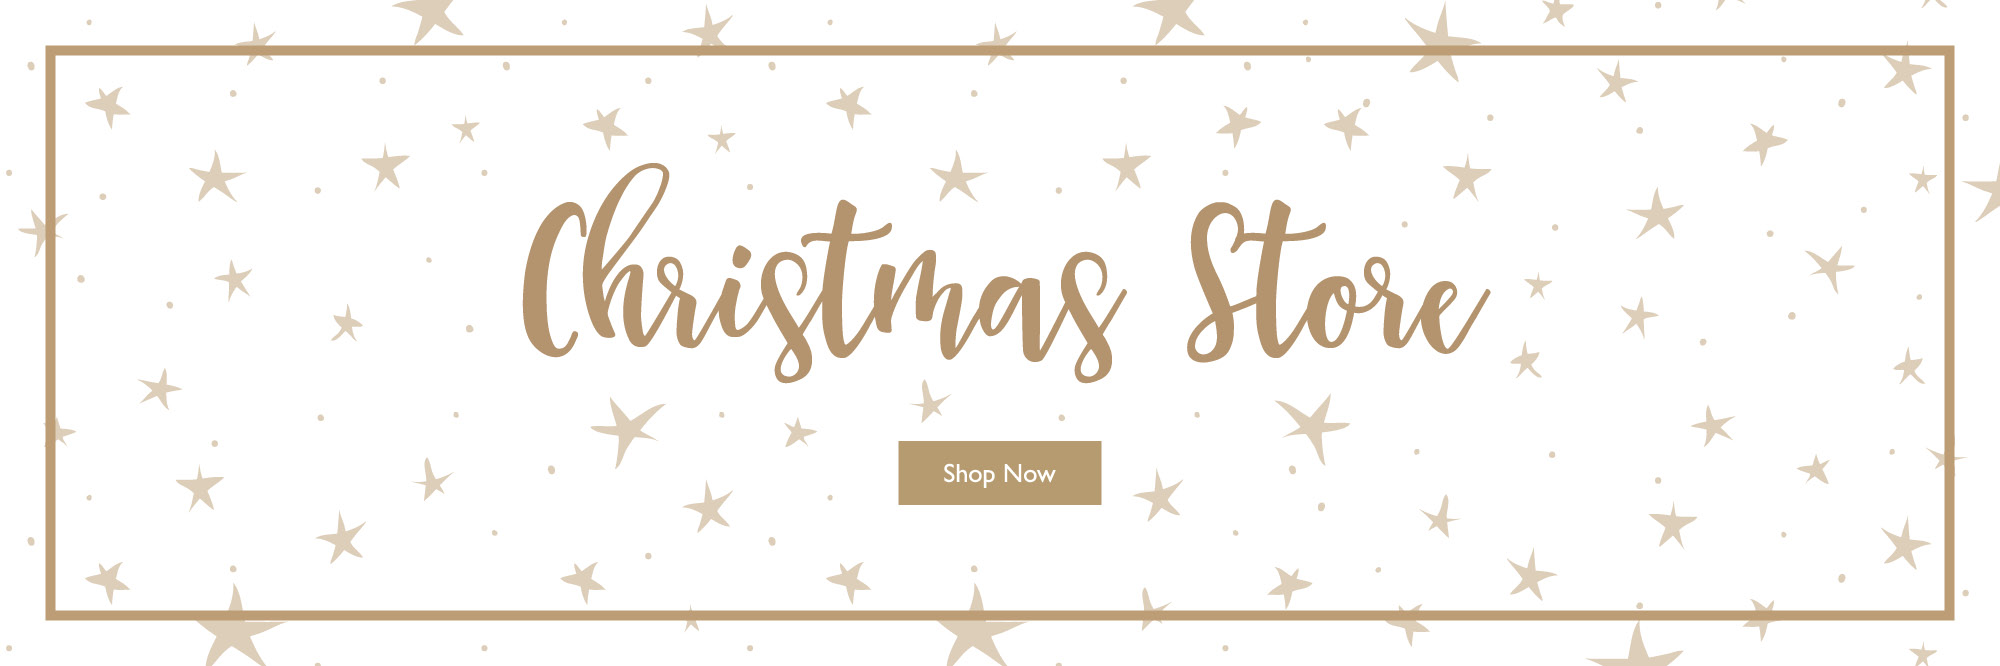 The Christmas Store Banner